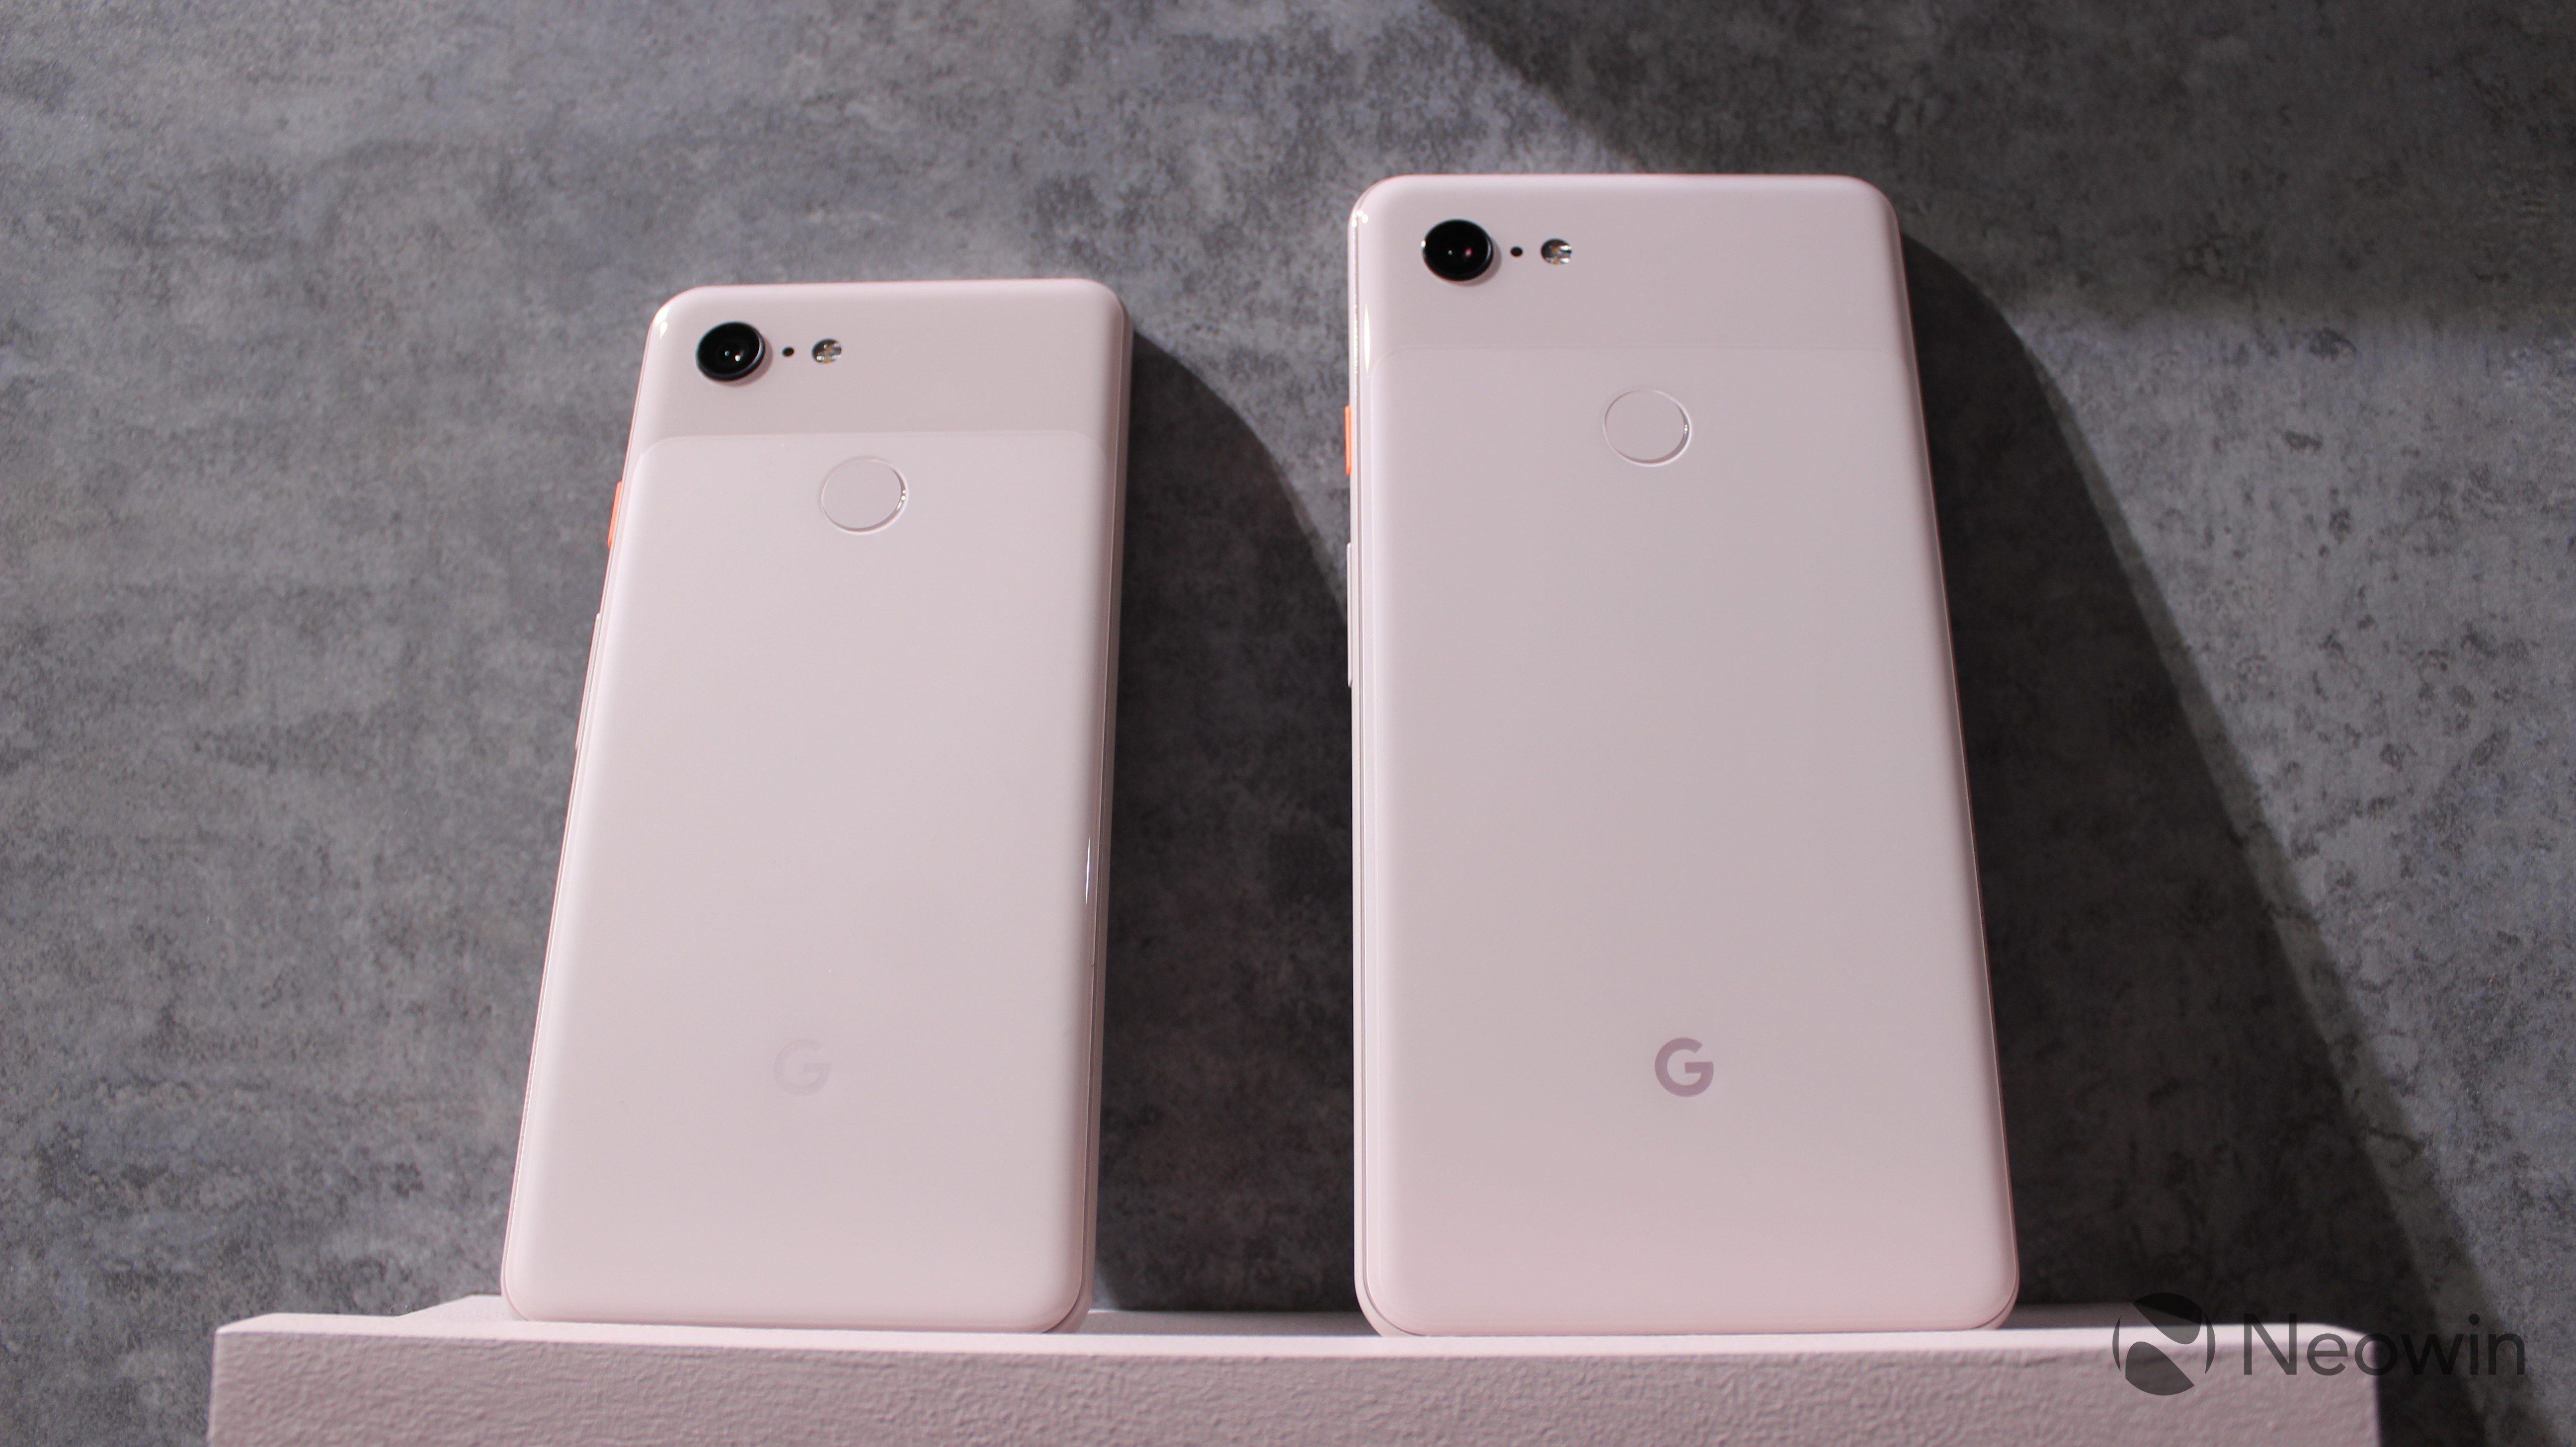 T-Mobile may begin offering the Google Pixel 3 series in the future